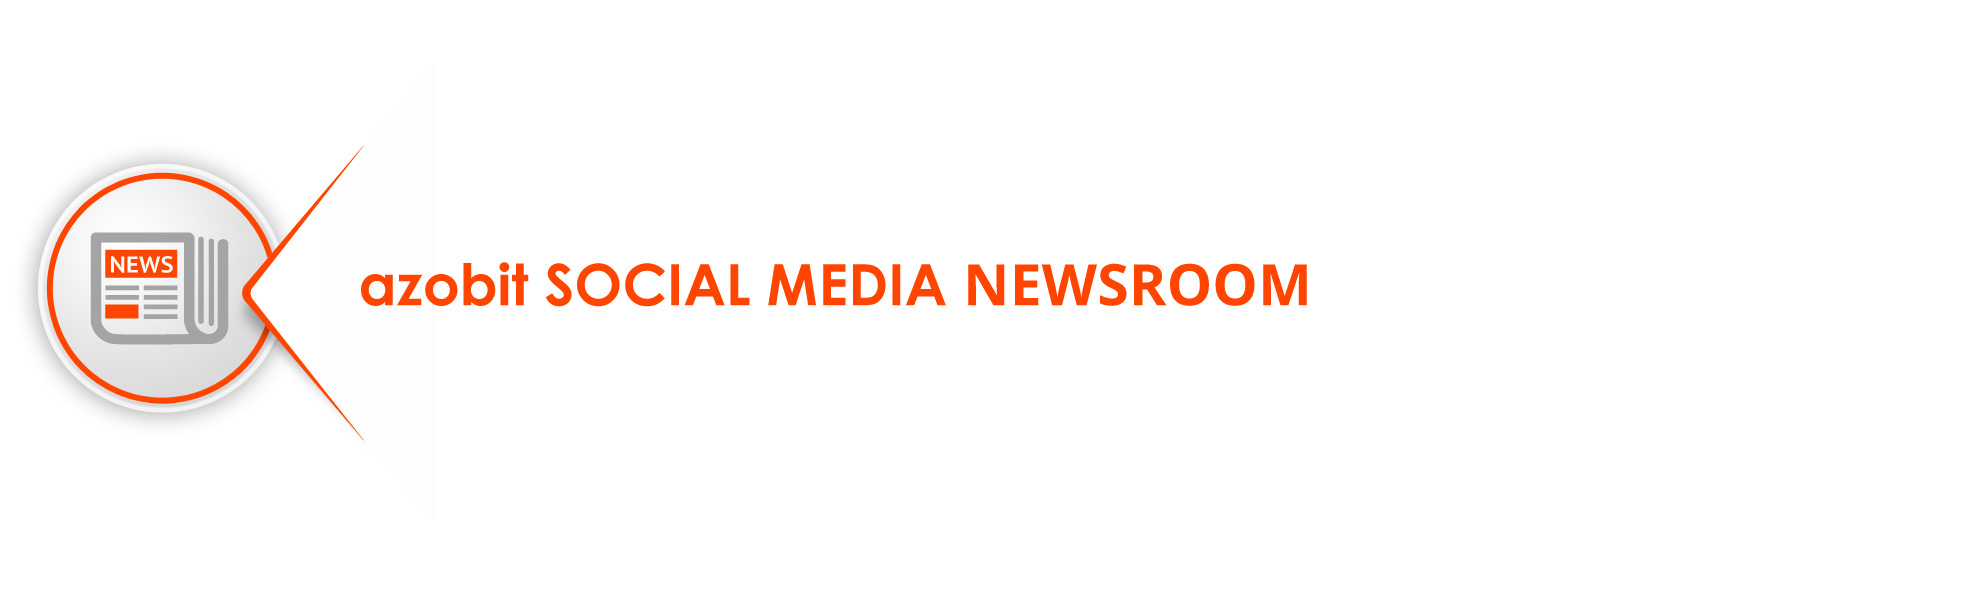 social-media-newsroom-azobit